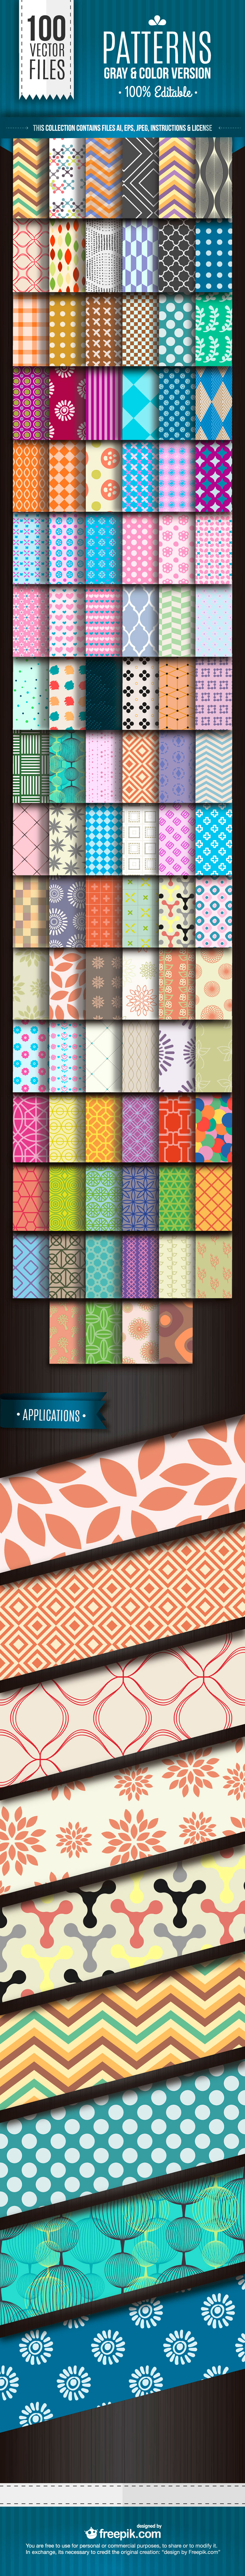 Free-download-repeating-vector-patterns-from-freepik-com-Webdesigner-Depot-wallpaper-wp5007735